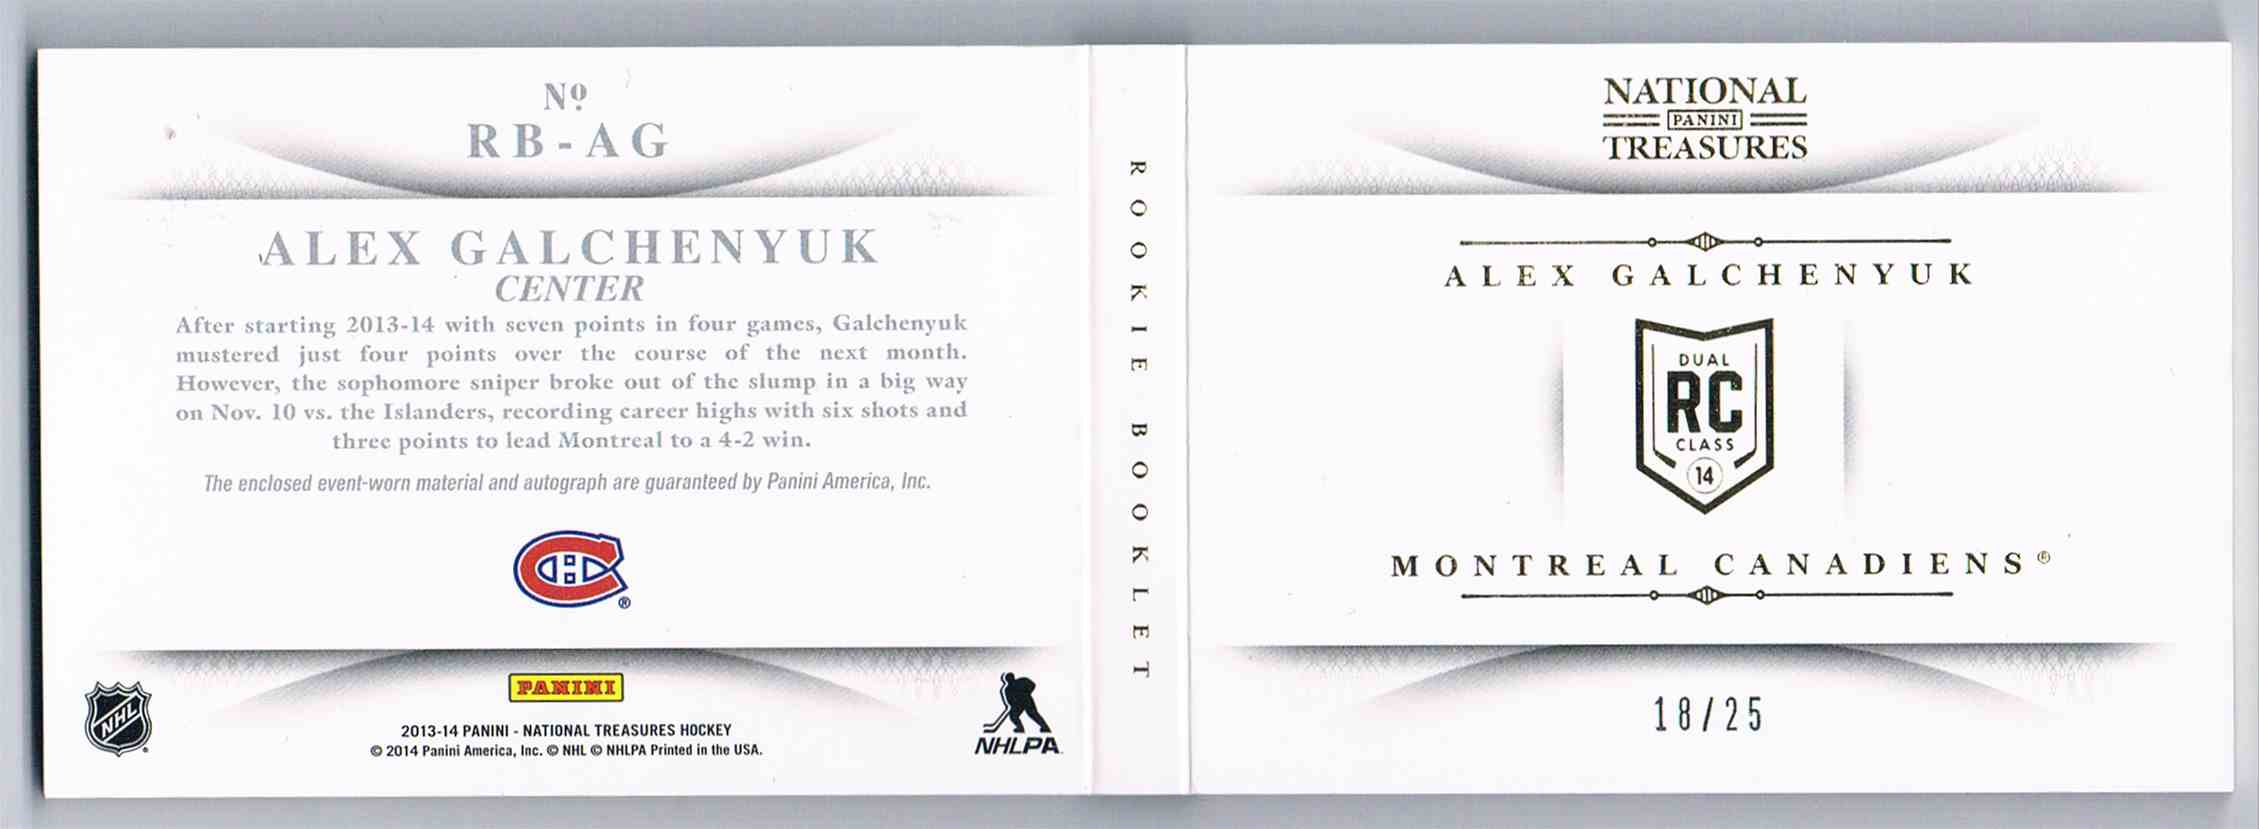 2013-14 Panini National Treasures Rookie Jumbo Jerseys Booklet Autographs Patch Alex Galchenyuk #RB-AG card back image